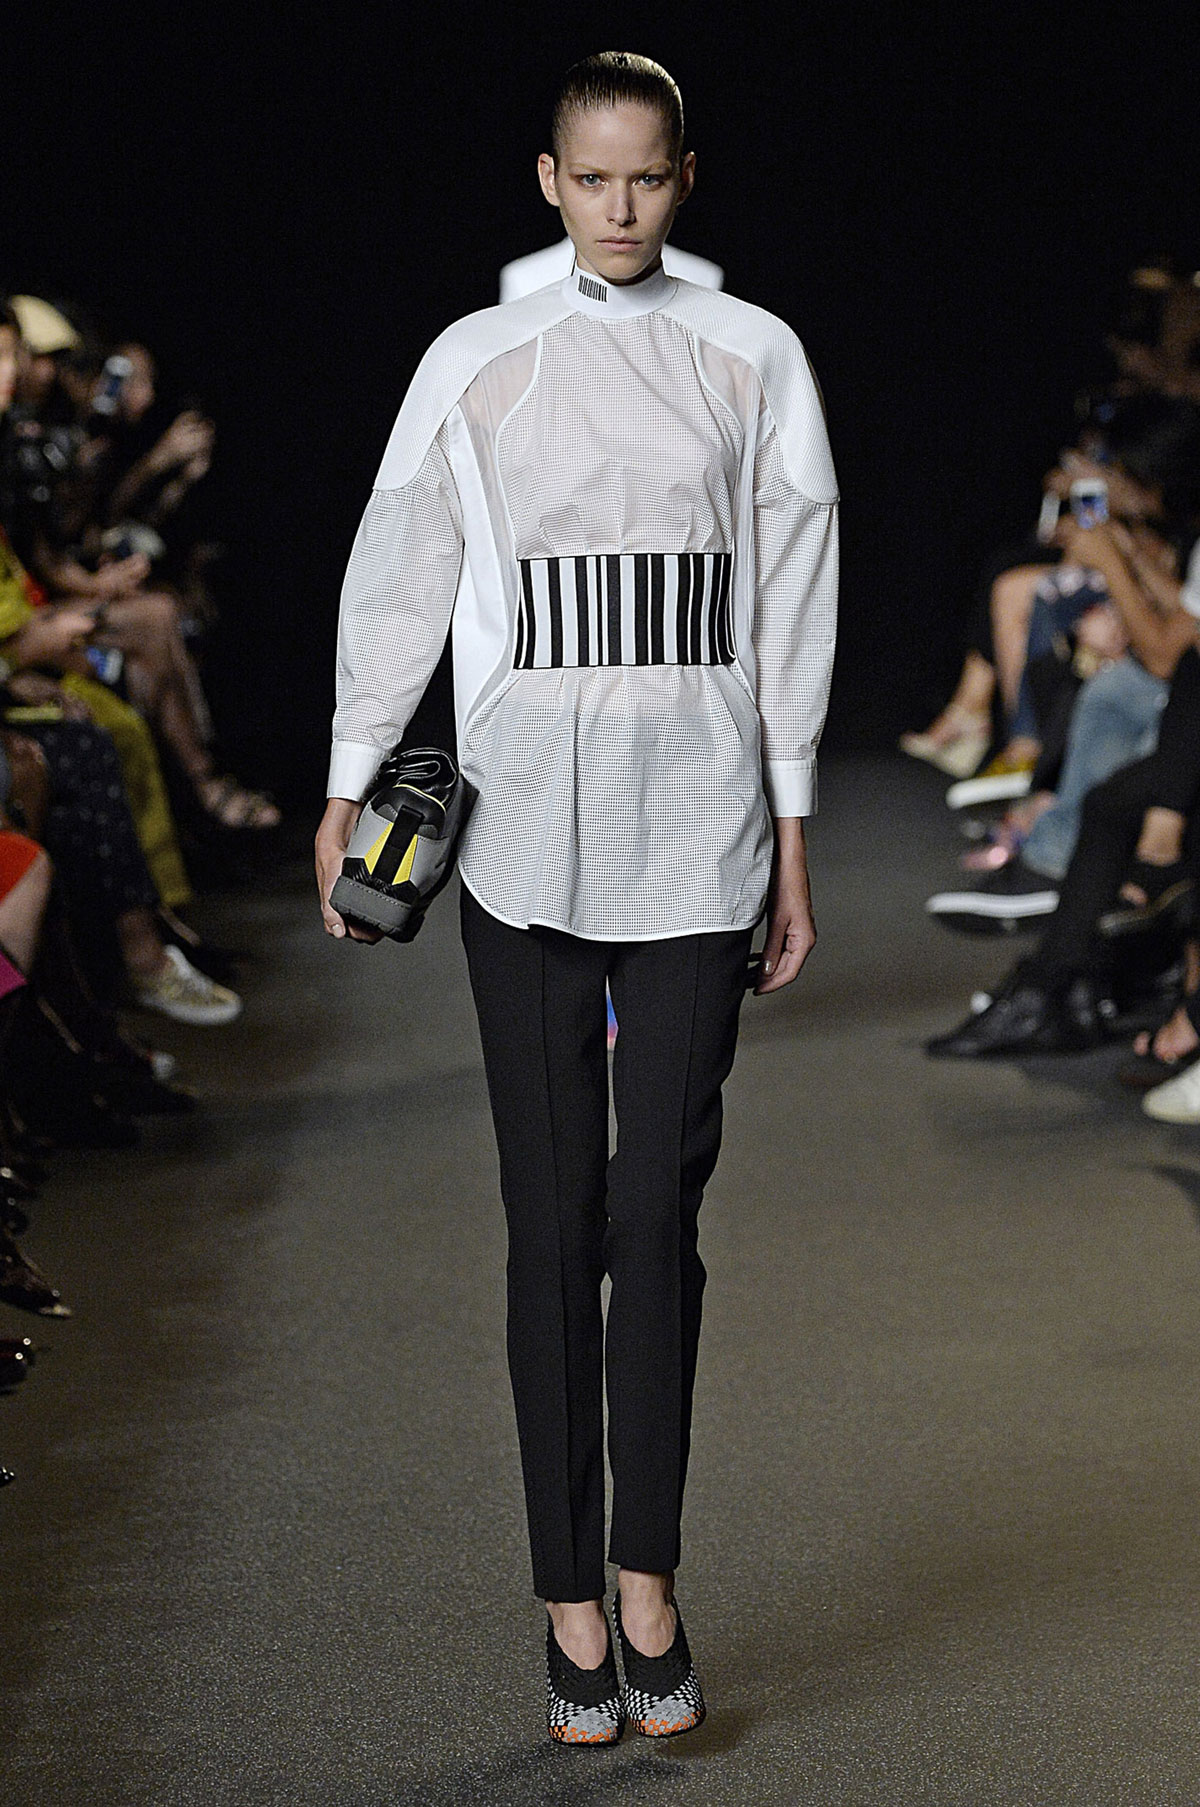 alexander-wang-runway-rtw-spring-2015-new-york-fashion-week-1